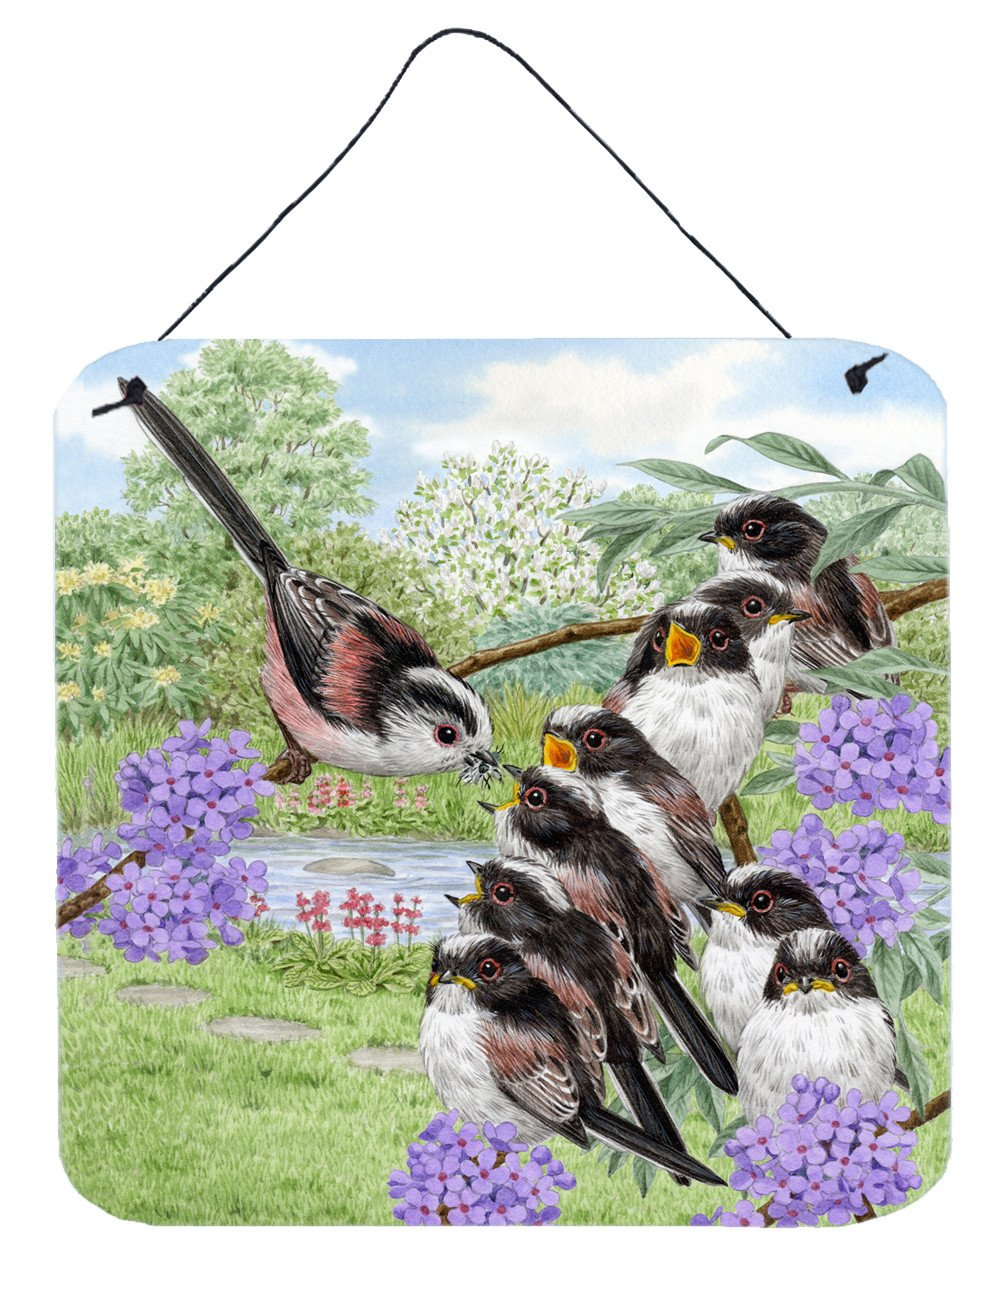 Long Tailed Tits by Sarah Adams Wall or Door Hanging Prints ASAD0690DS66 by Caroline's Treasures